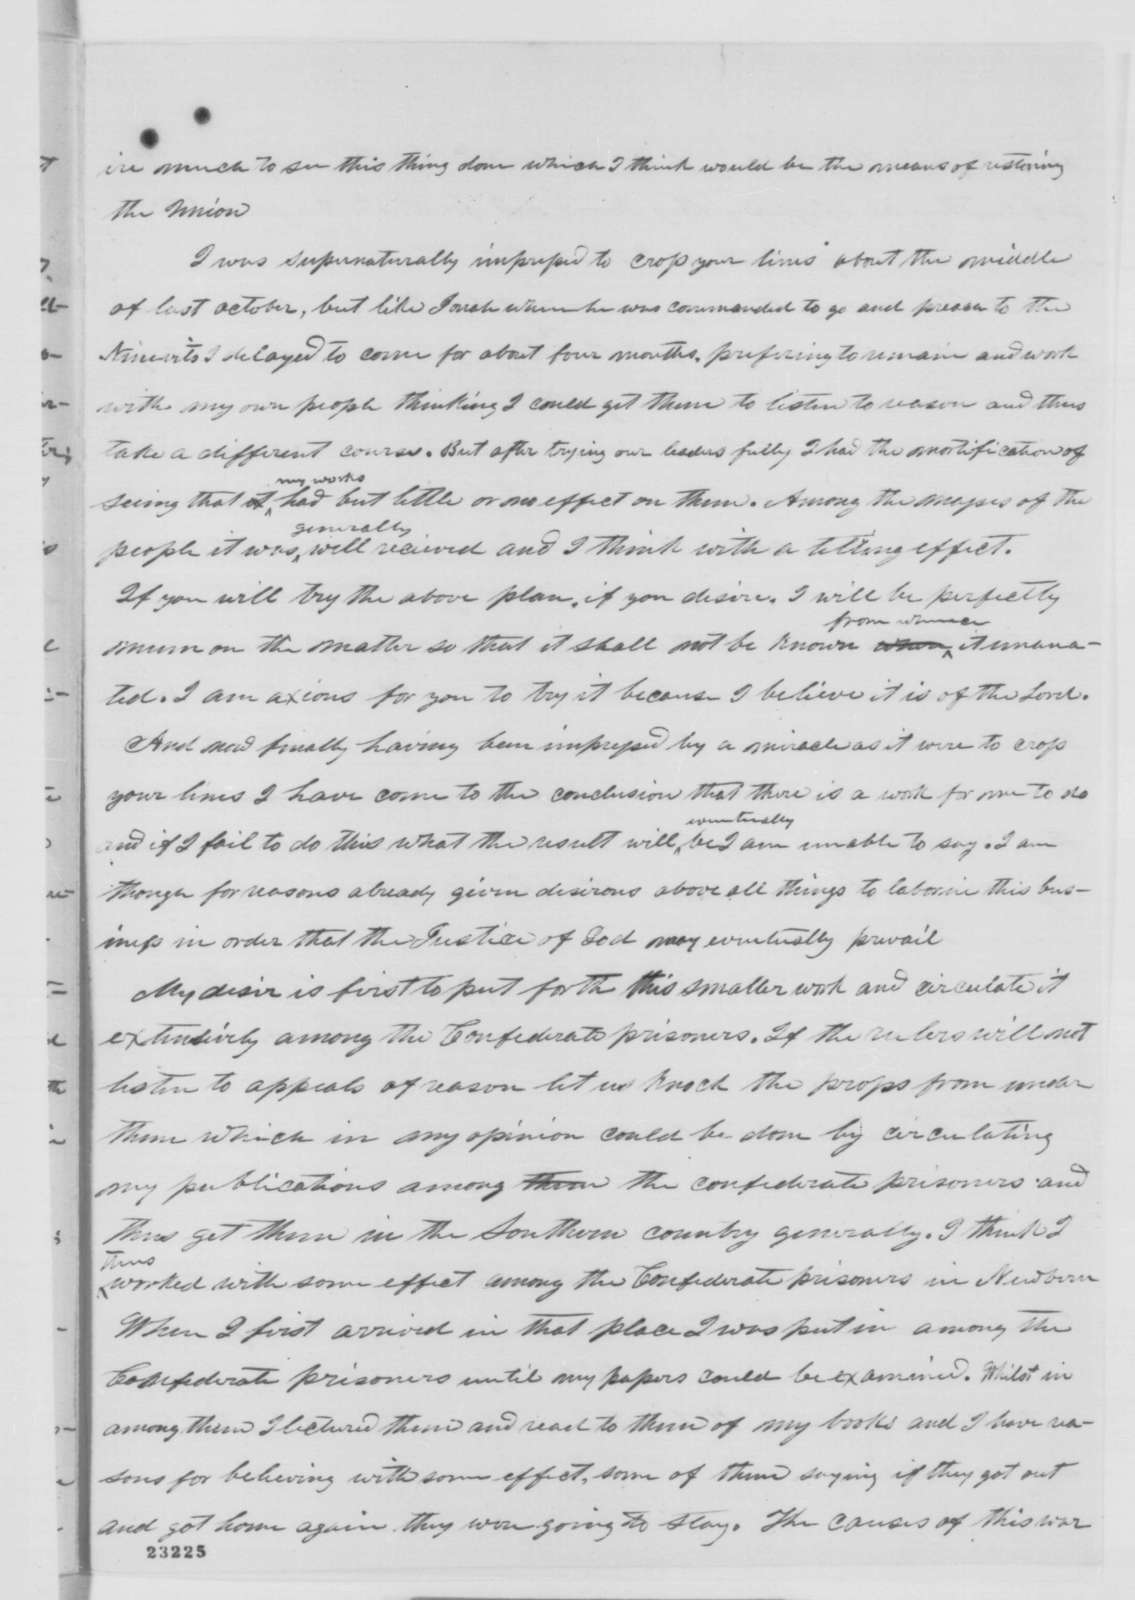 Bryan Tyson to Abraham Lincoln, Thursday, April 30, 1863  (Efforts on behalf of the Union)